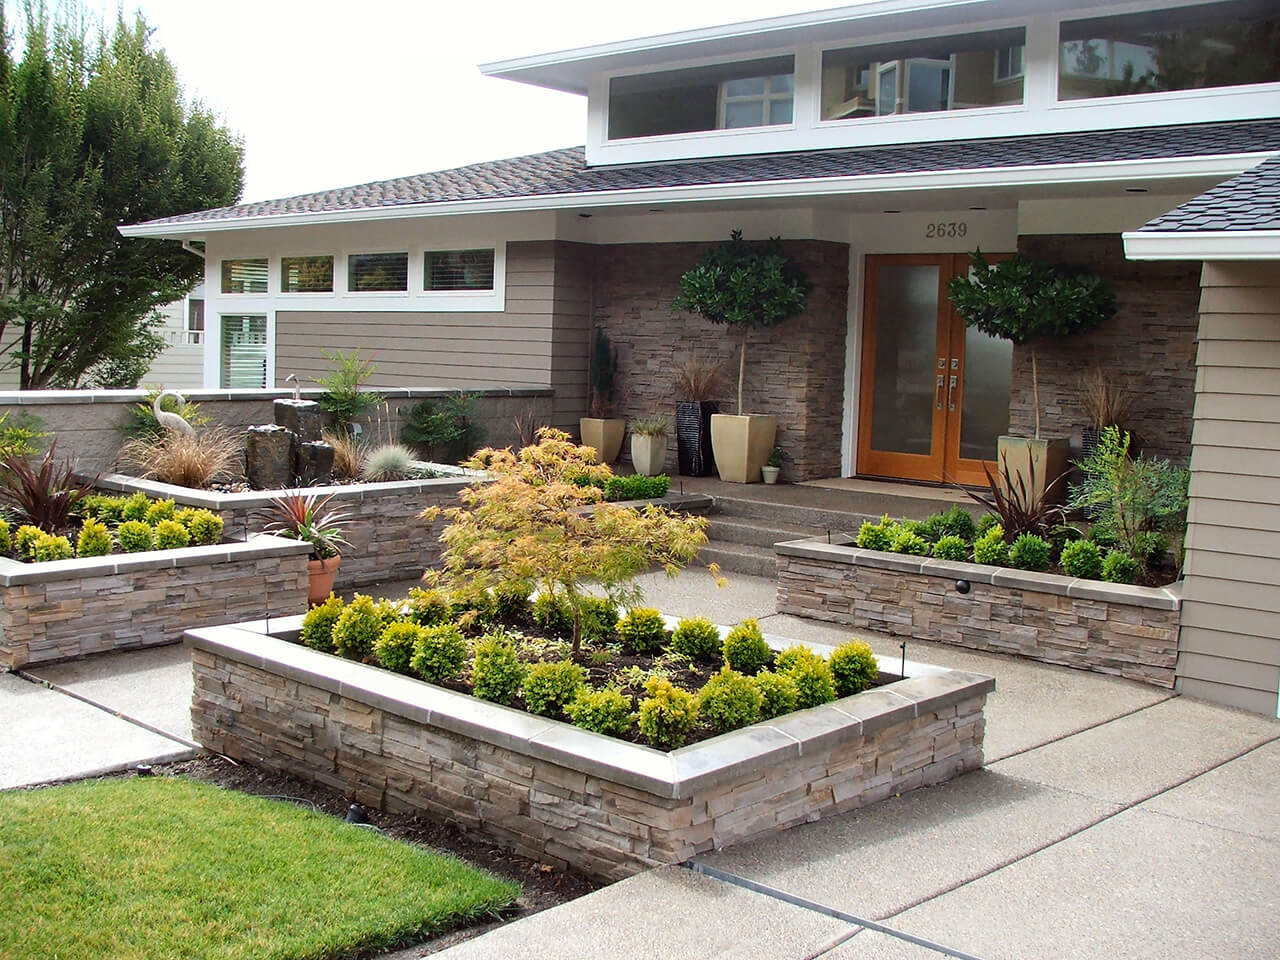 20 brilliant front garden landscaping ideas style motivation for Front lawn garden design